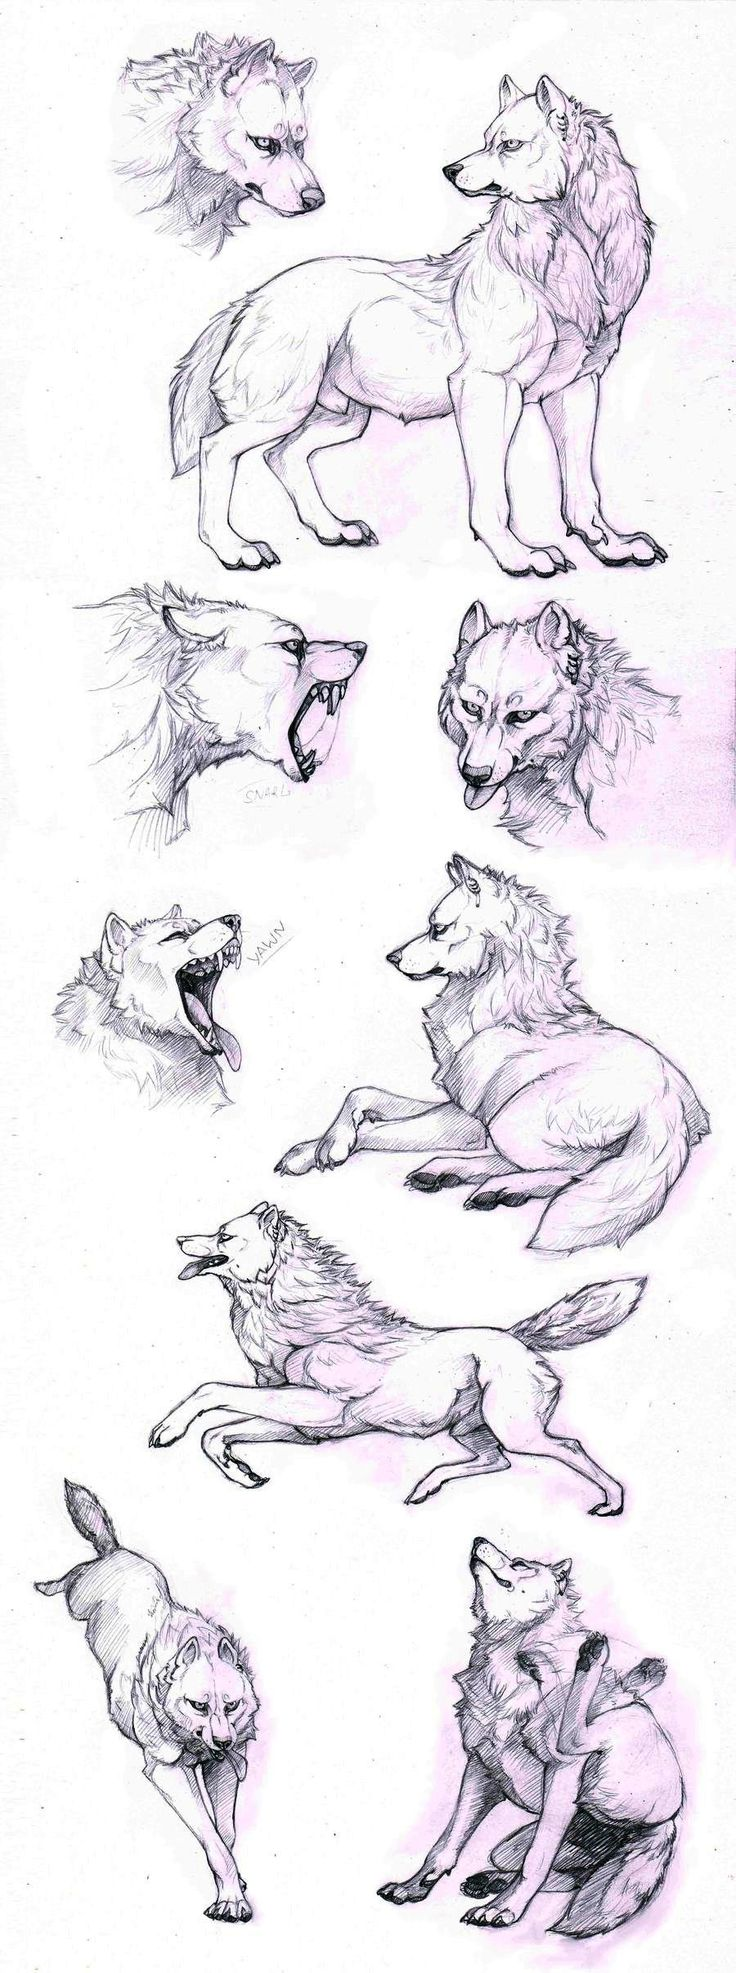 25 unique wolf drawings ideas on pinterest awesome drawings how to draw a wolf different poses howling lying standing animal ccuart Choice Image